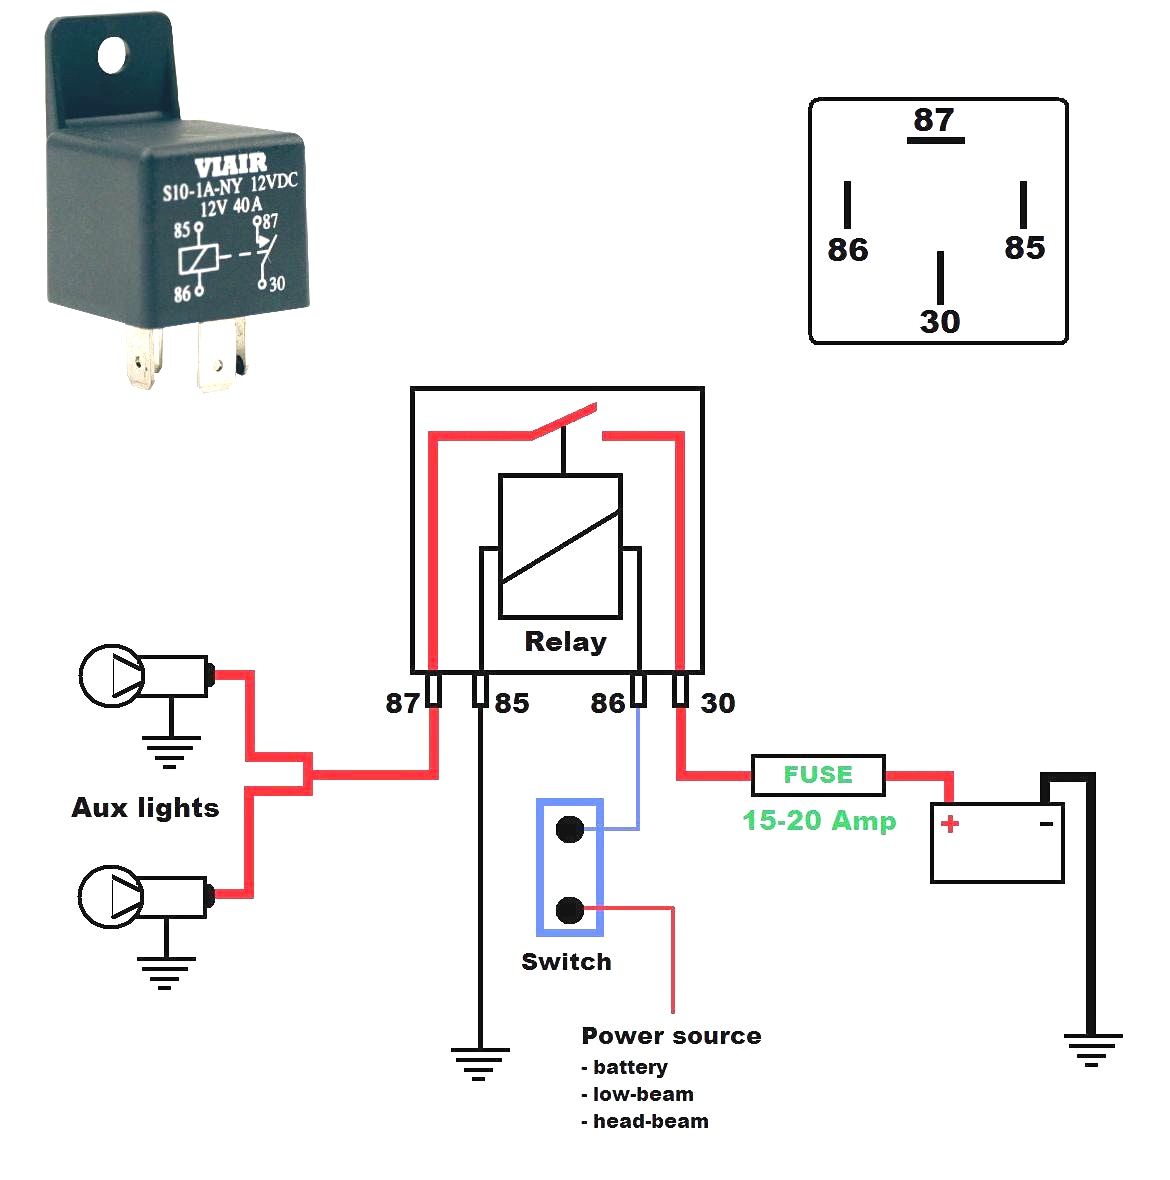 [DIAGRAM_38IS]  OC_7270] Bosch 12V Relay Wiring Diagram Also 30 Bosch Relay Wiring Diagram  As Download Diagram | Bosch Volt Gauge Wiring Diagram |  | Caci Sianu Sulf Hutpa Bupi Isra Over Peted Redne Animo Isra Mohammedshrine  Librar Wiring 101